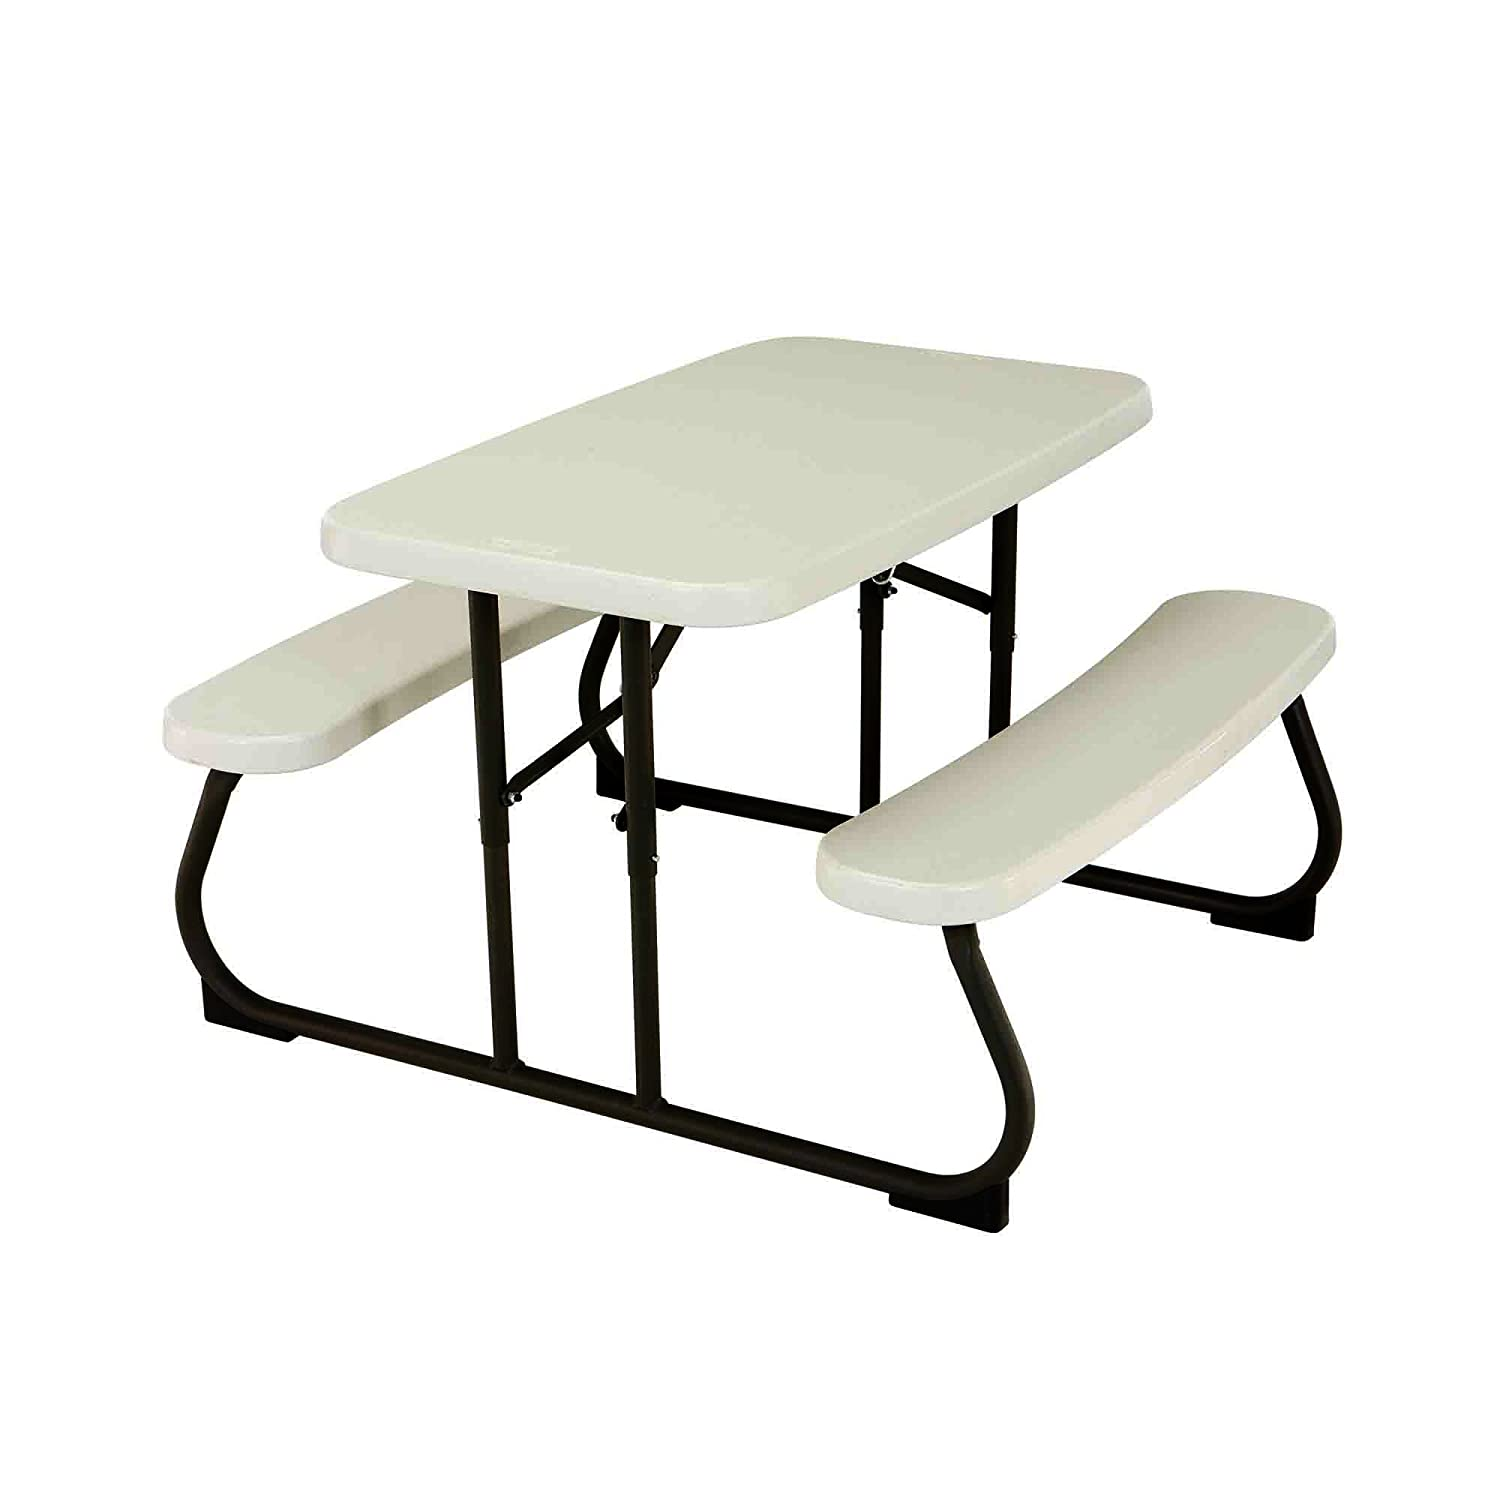 Lifetime 2 7 ft 0 83 m Children s Folding Picnic Table Beige